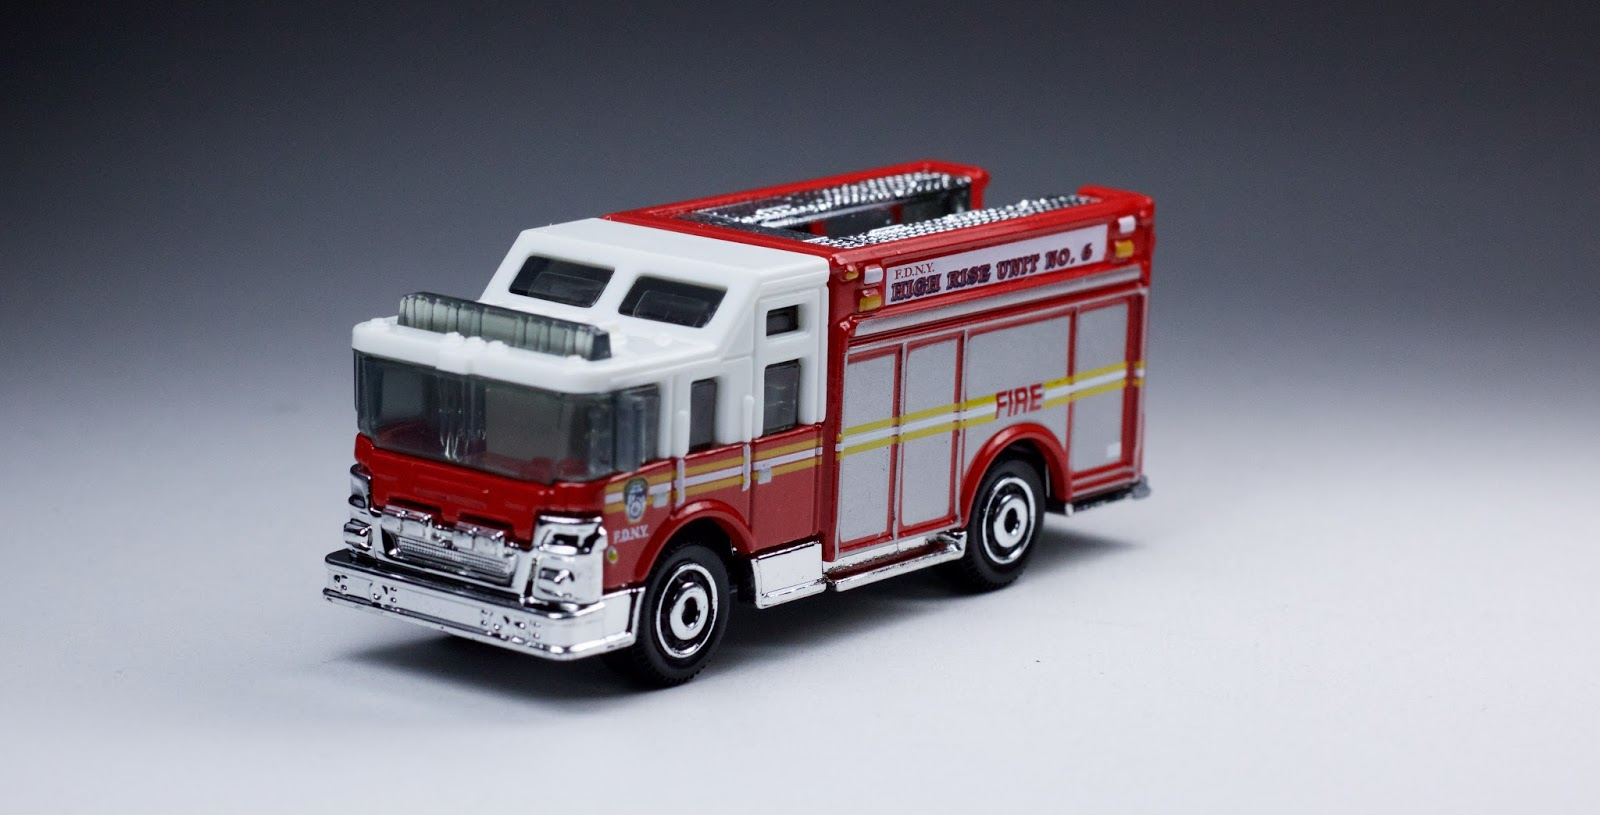 Toys For Trucks Everett : The new fdny hazard squad continues a fantastic run by one